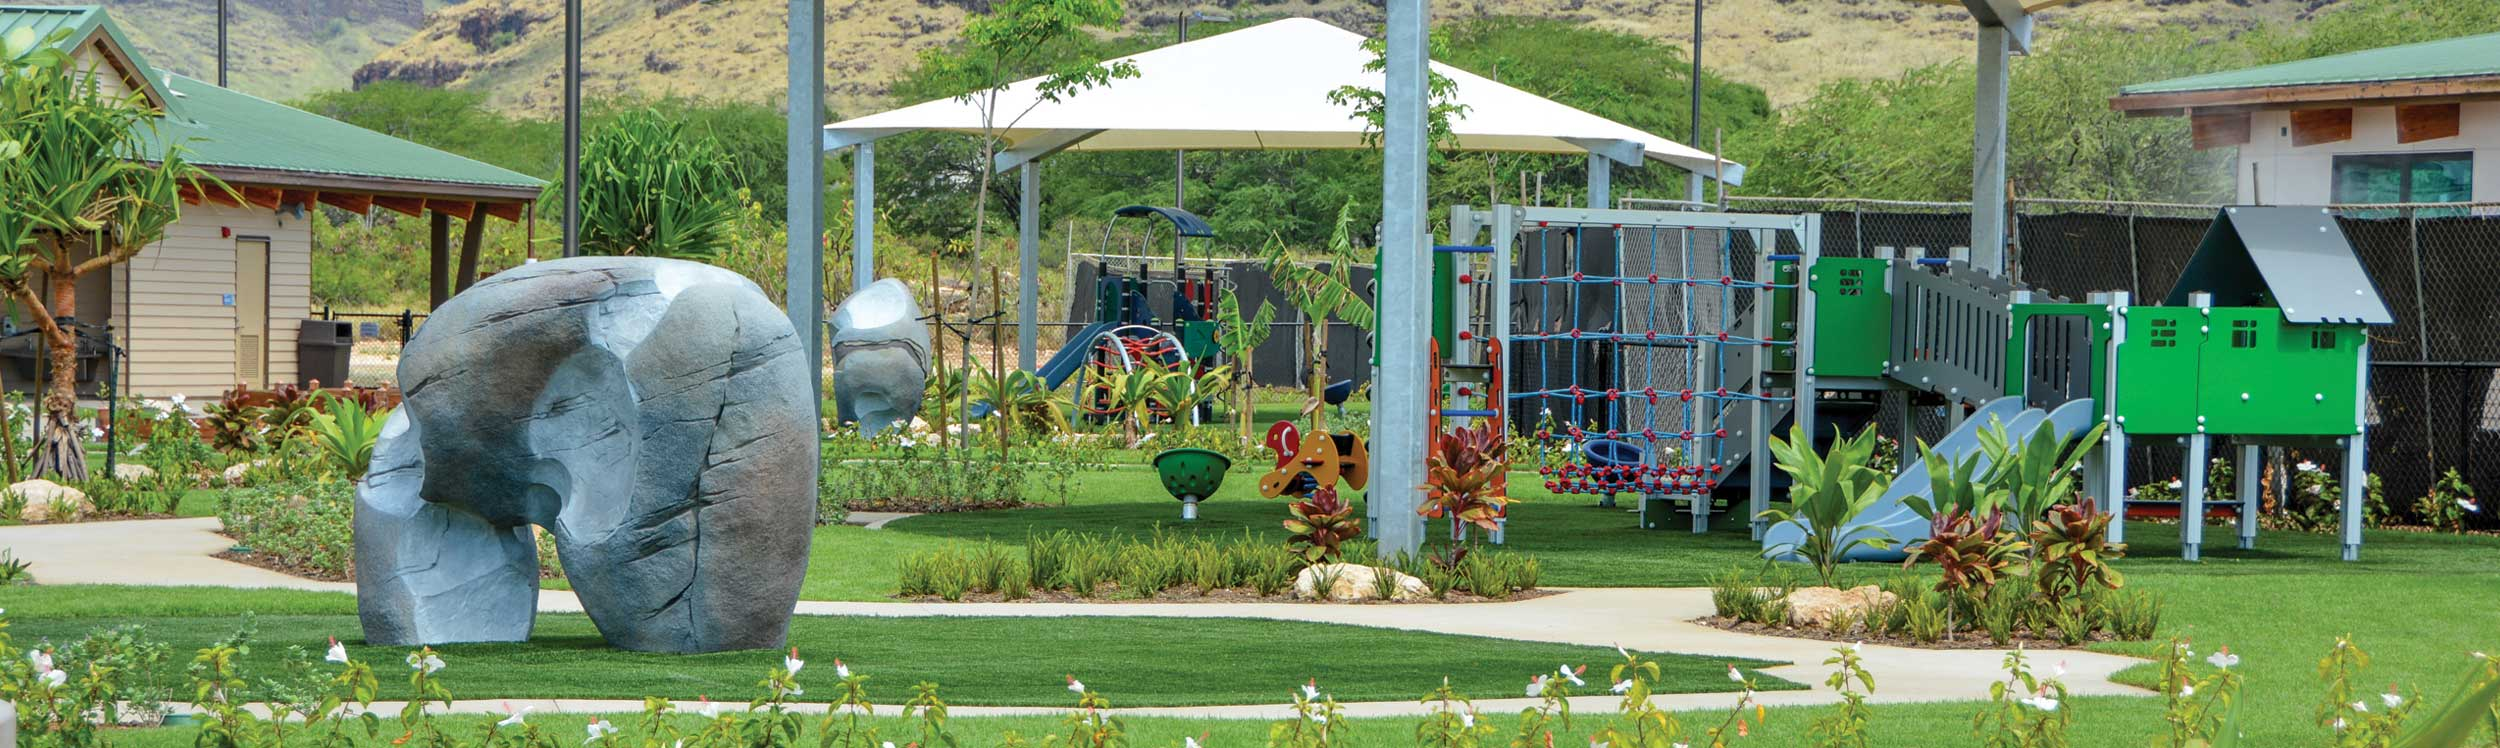 Shade structure over play equipment with rock climbing toy